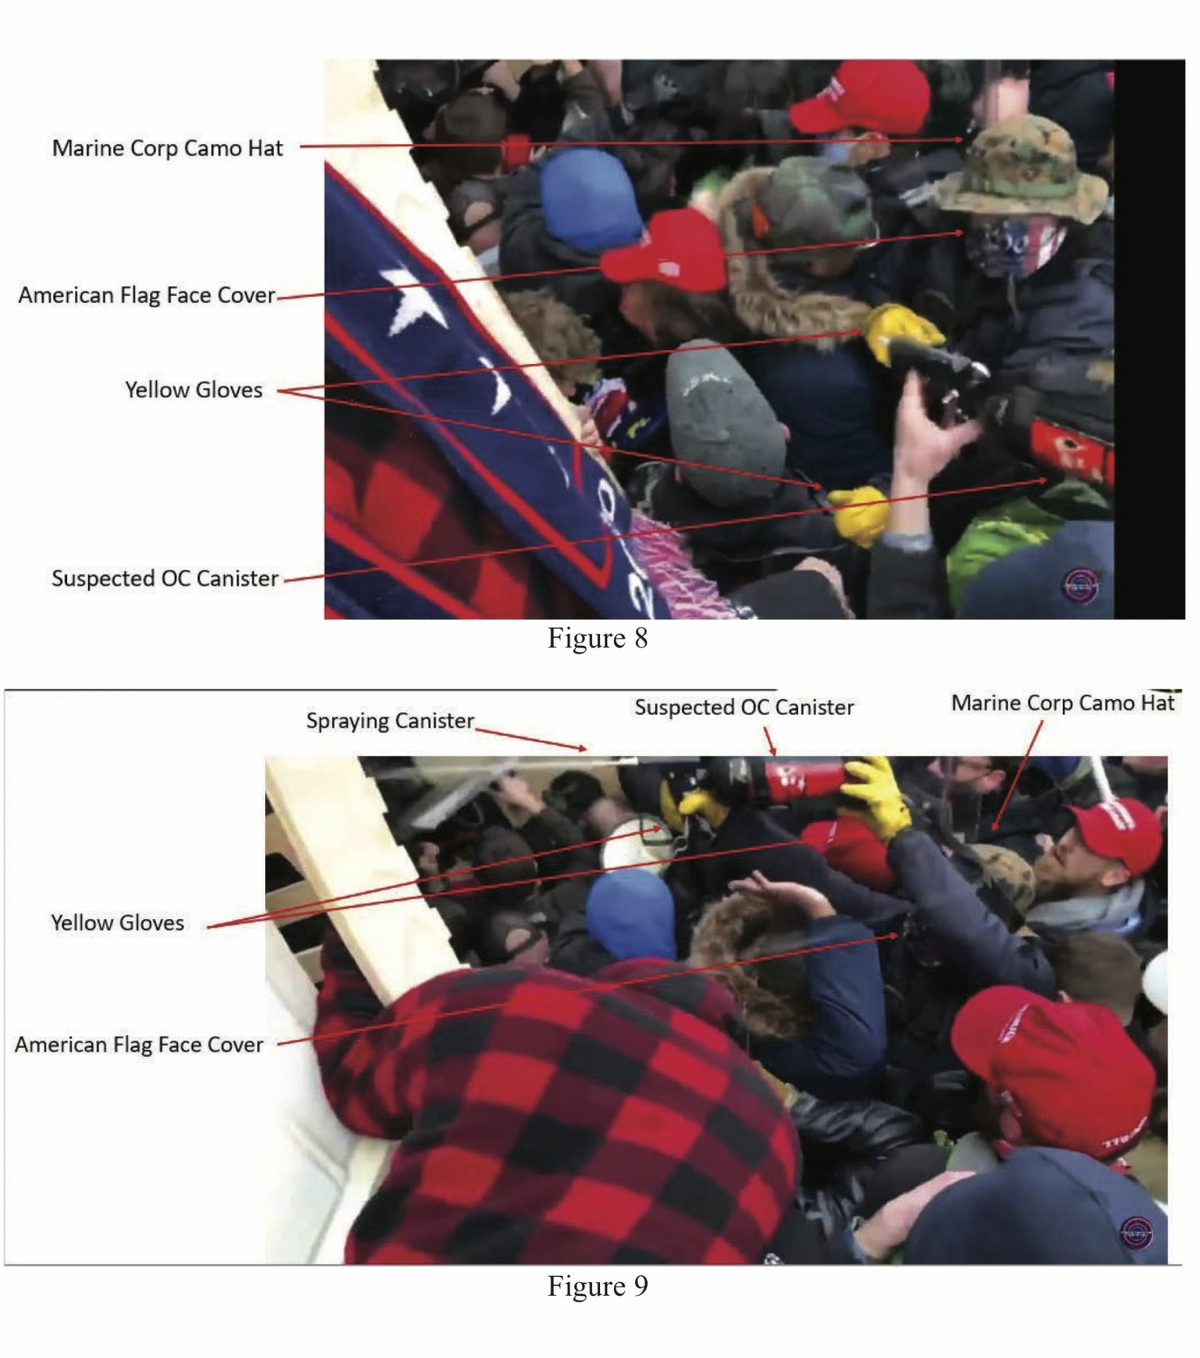 Stills from video footage showing Ryan Nichols of Longview, Texas, and Alex Harkrider of Carthage, Texas, joining a crowd forcing its way into the Capitol, according to charging documents.